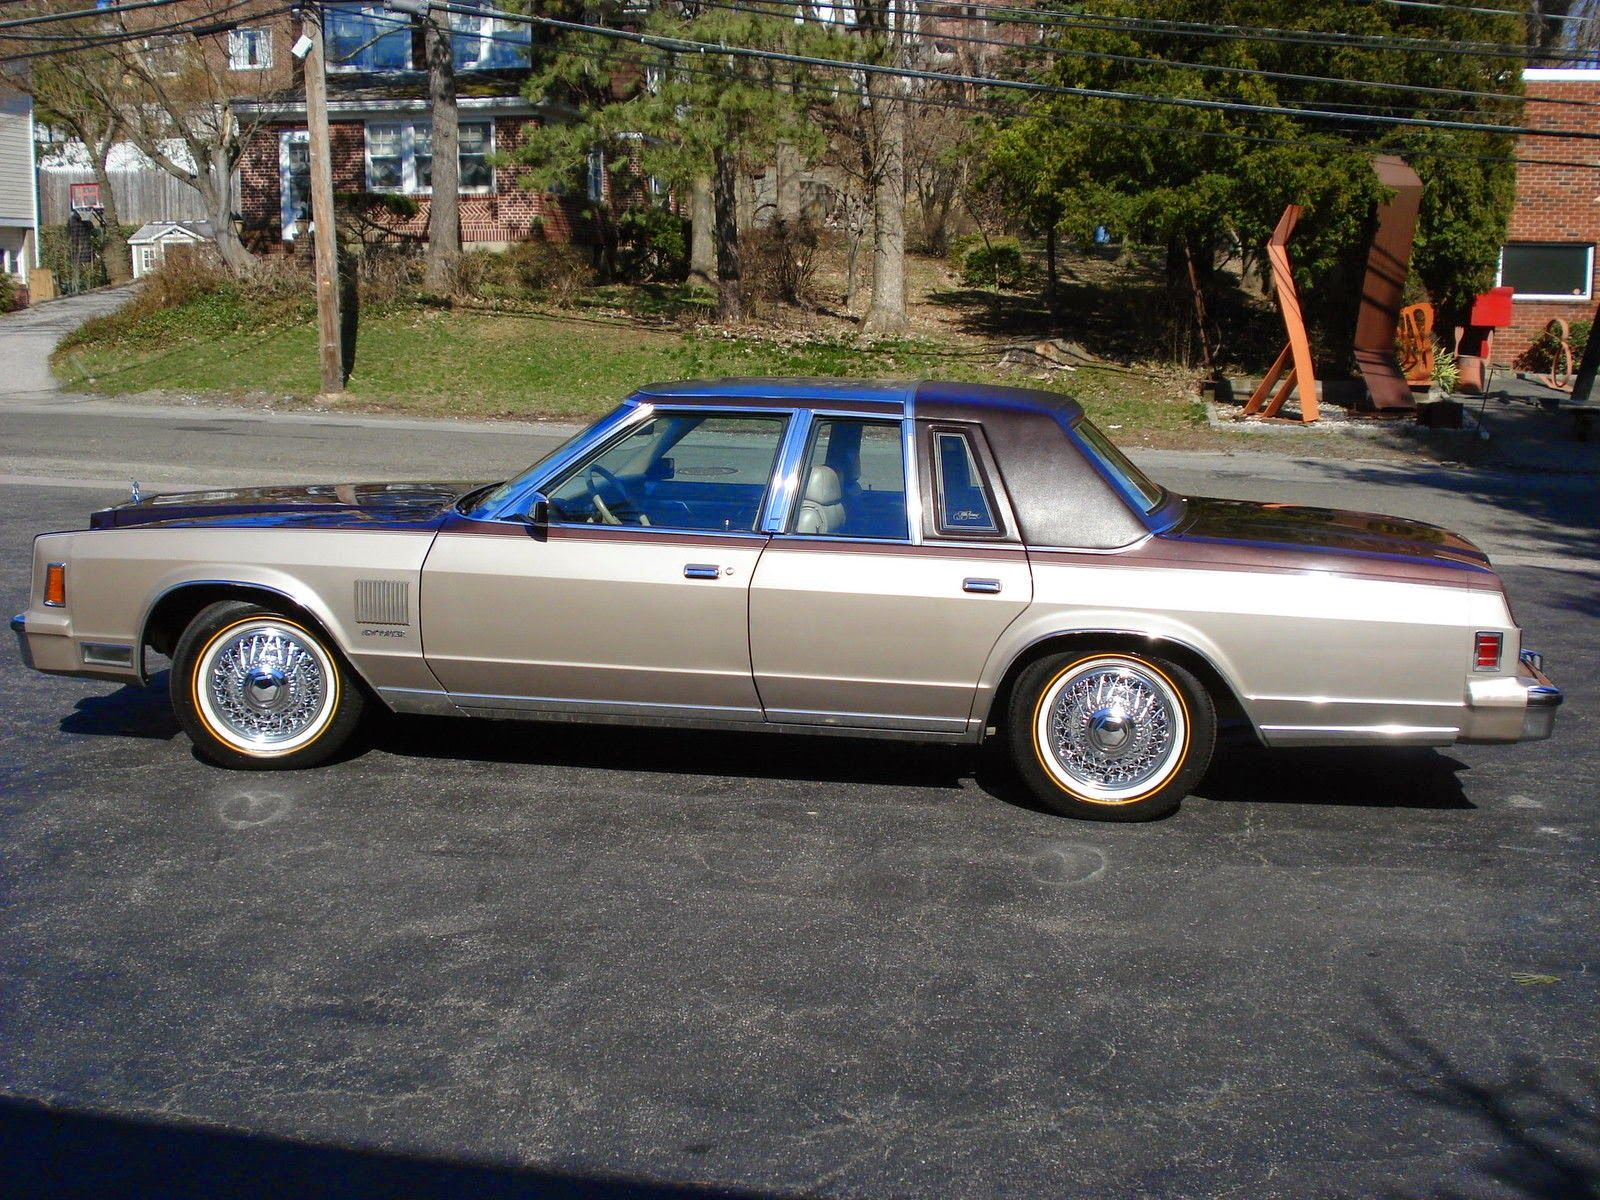 Wiring Diagrams 1978 Chrysler New Yorker Free Download 1966 Diagram 1981 Fifth Avenue Edition 4 Door Pillared Hardtop At Ford Aerostar